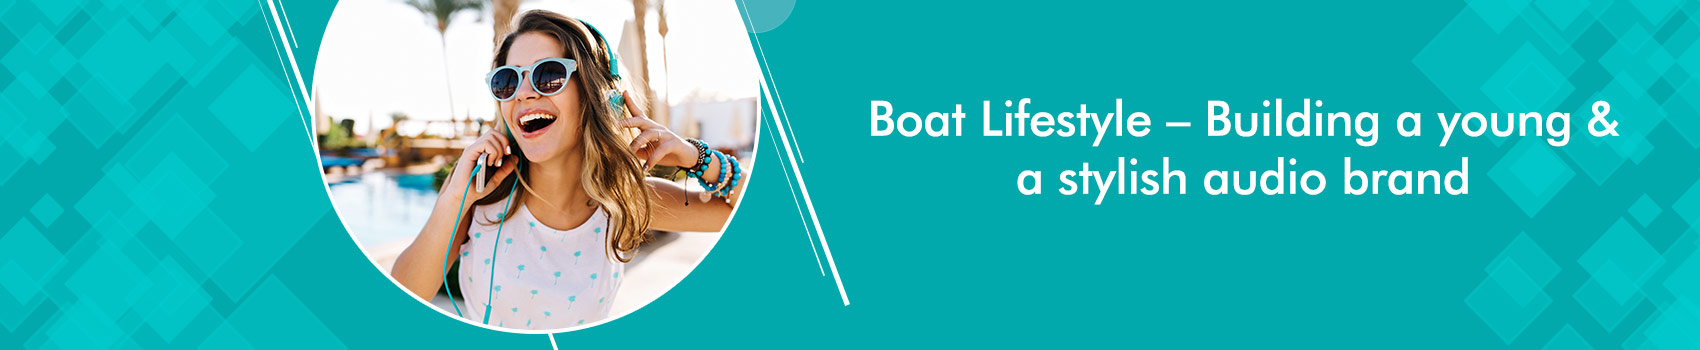 Boat Lifestyle – Building a young & a stylish audio brand